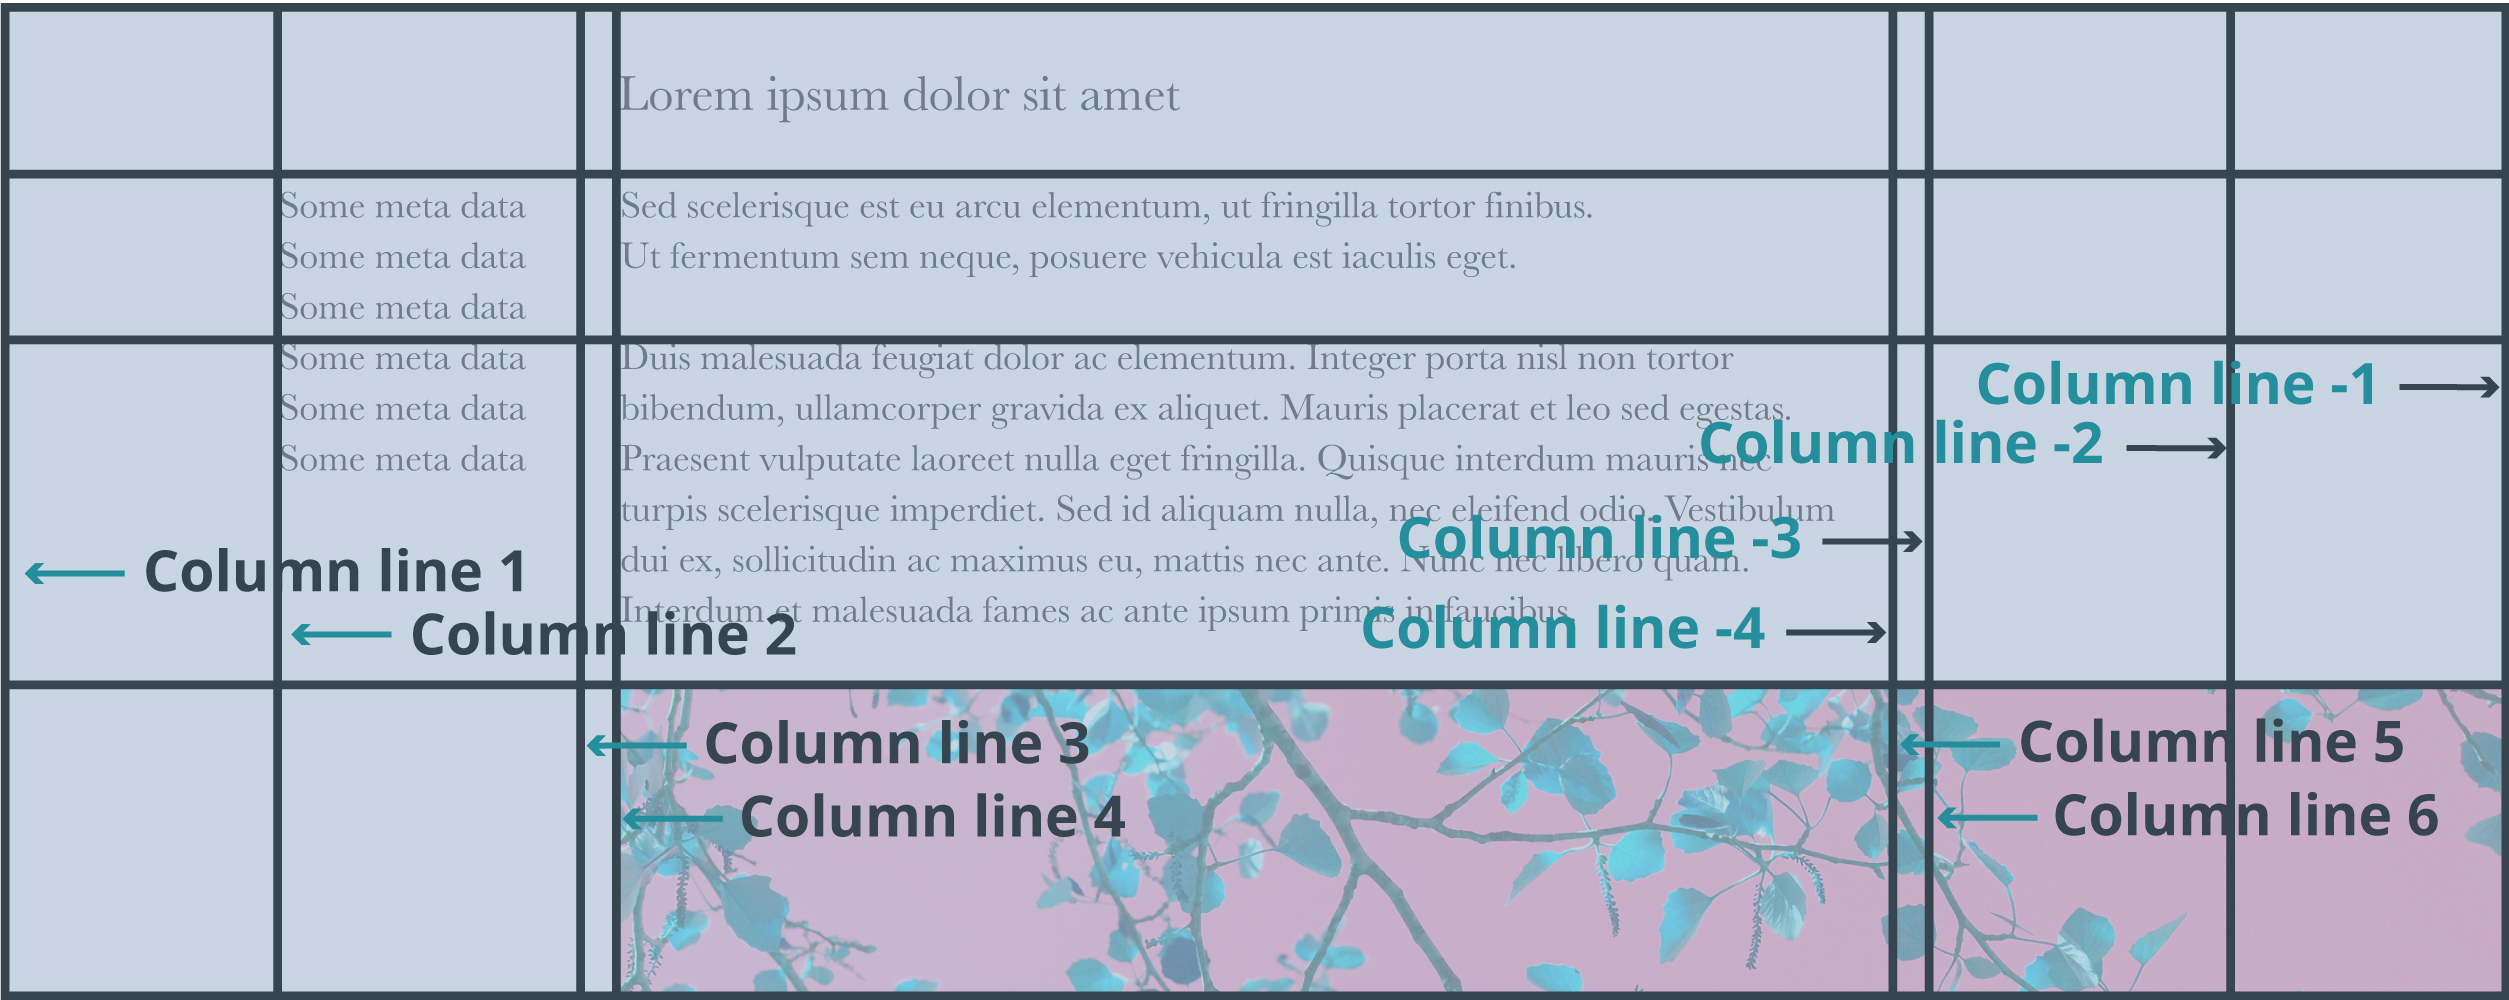 Css grid layout column lines